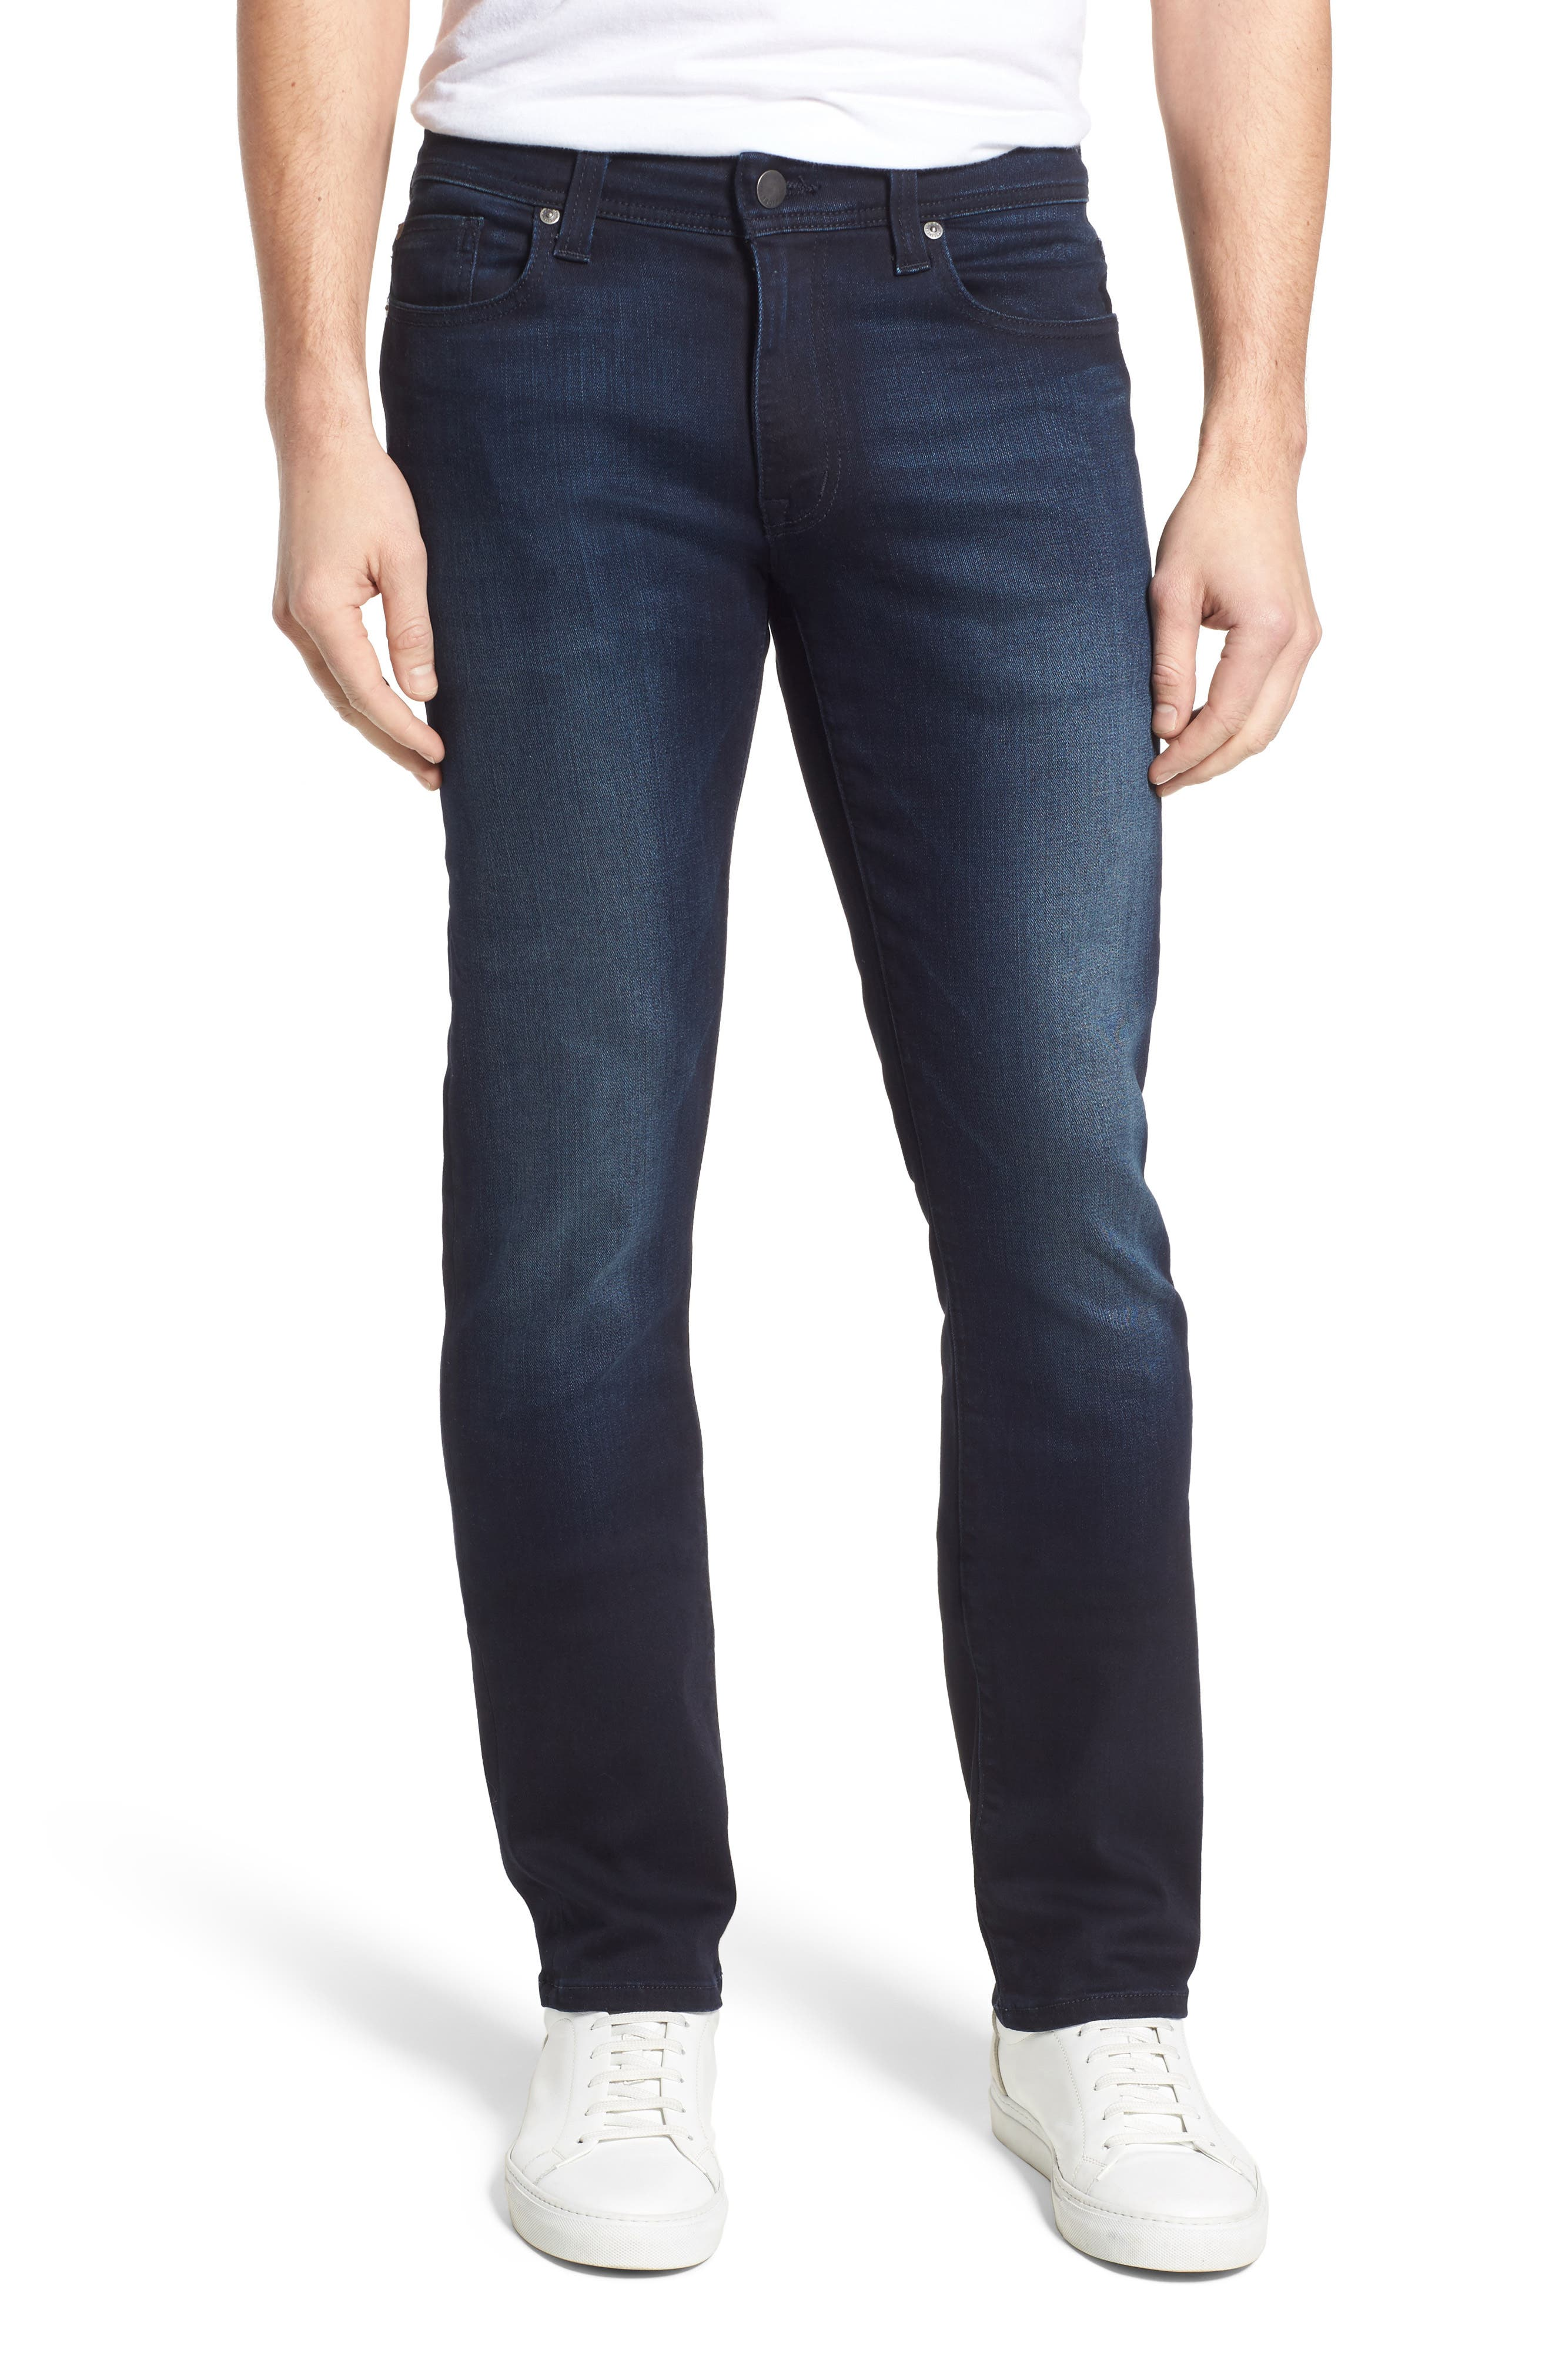 Jimmy Slim Straight Fit Jeans,                             Main thumbnail 1, color,                             Barracuda